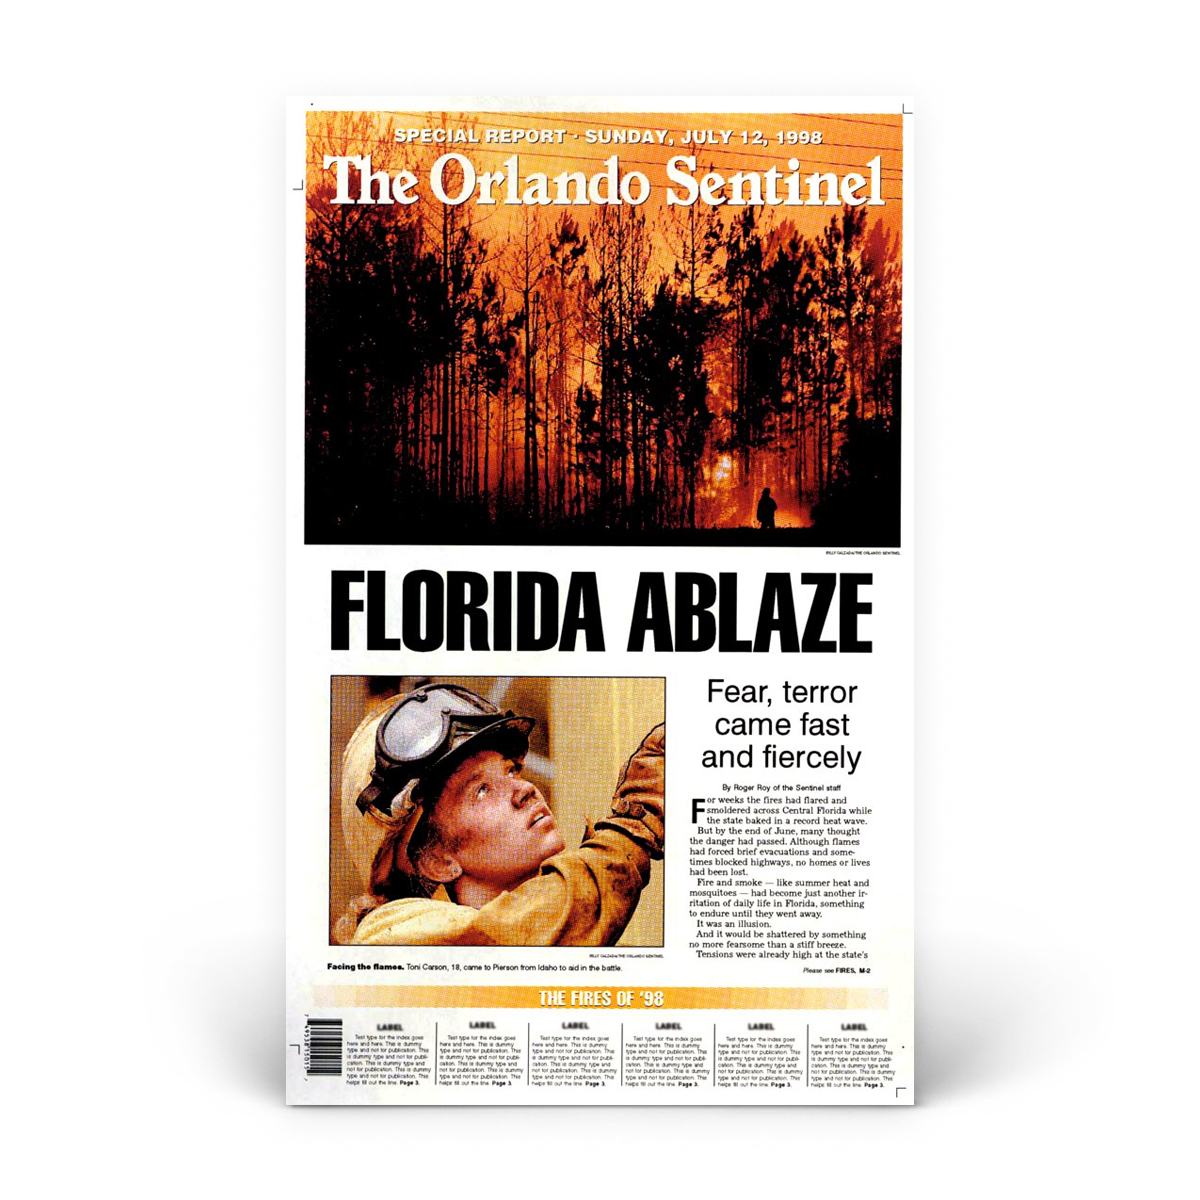 Commemorative Front Page: Fires of '98